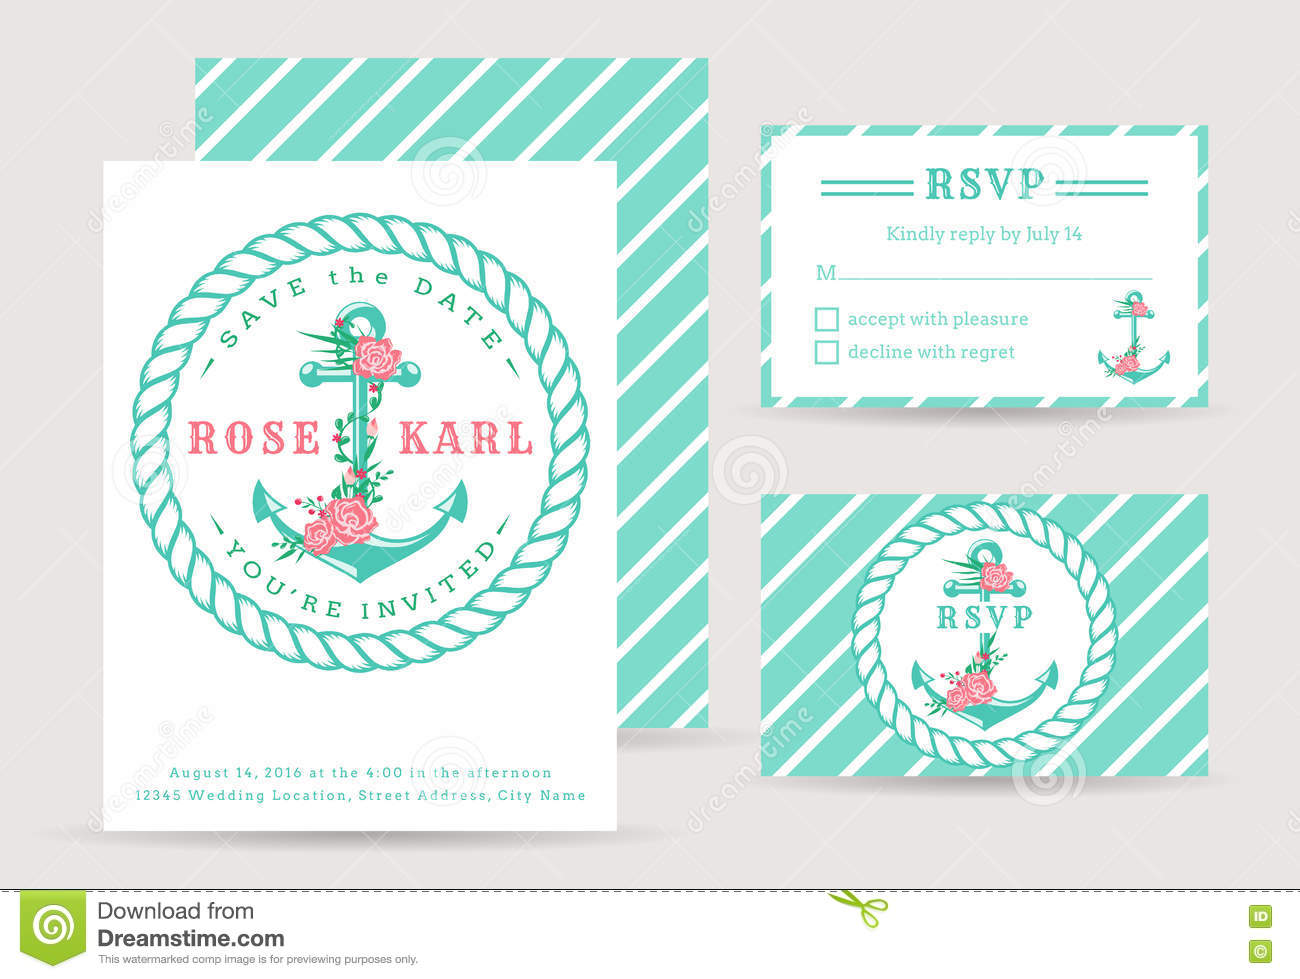 Nautical Wedding Invitations. Stock Vector - Illustration of frame ...